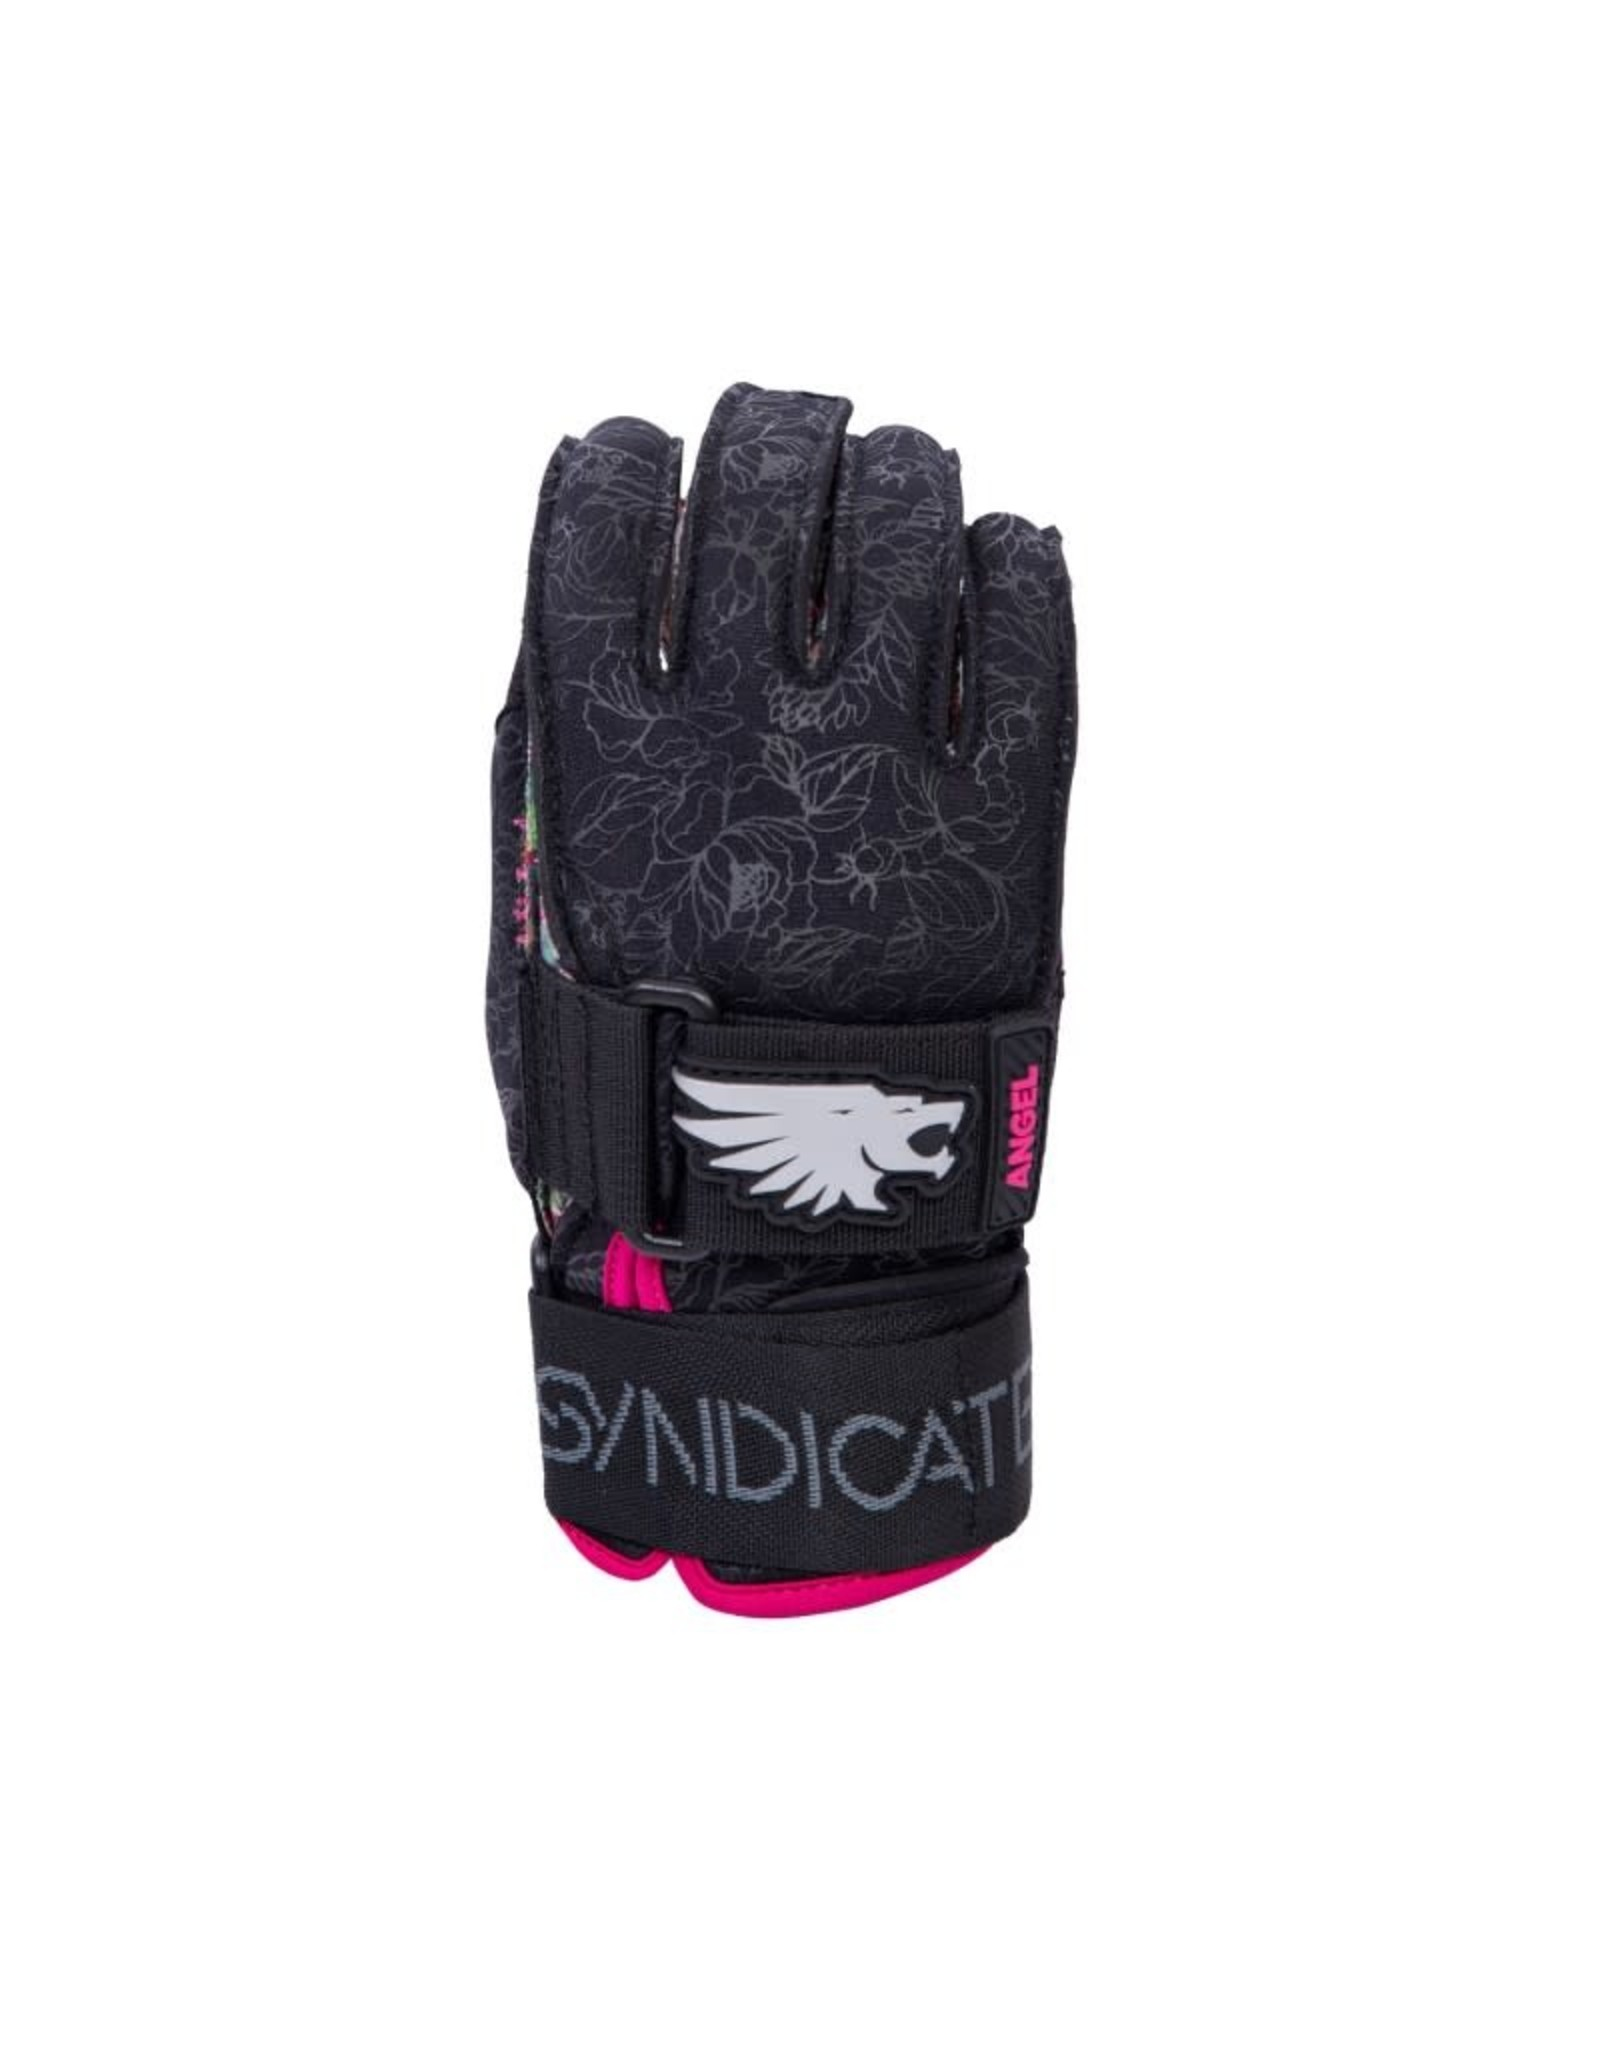 HO Syndicate Angel Inside Out Glove